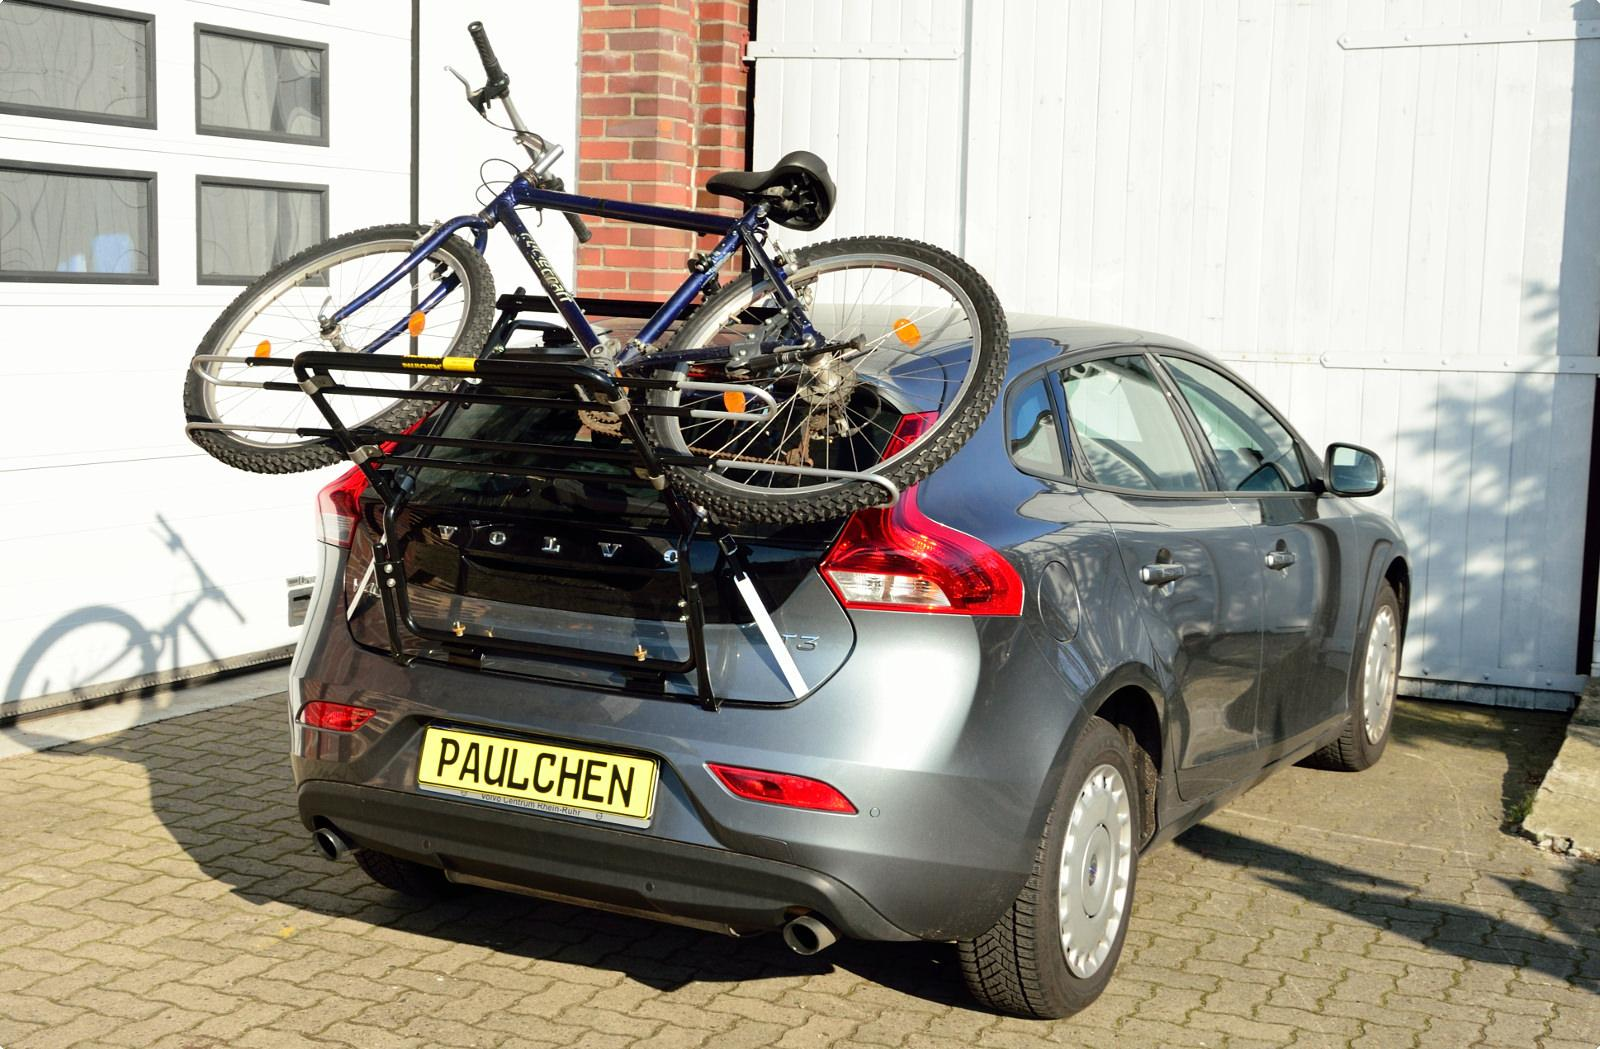 Bicycle carrier for Volvo V40 - Paulchen Heckträger System